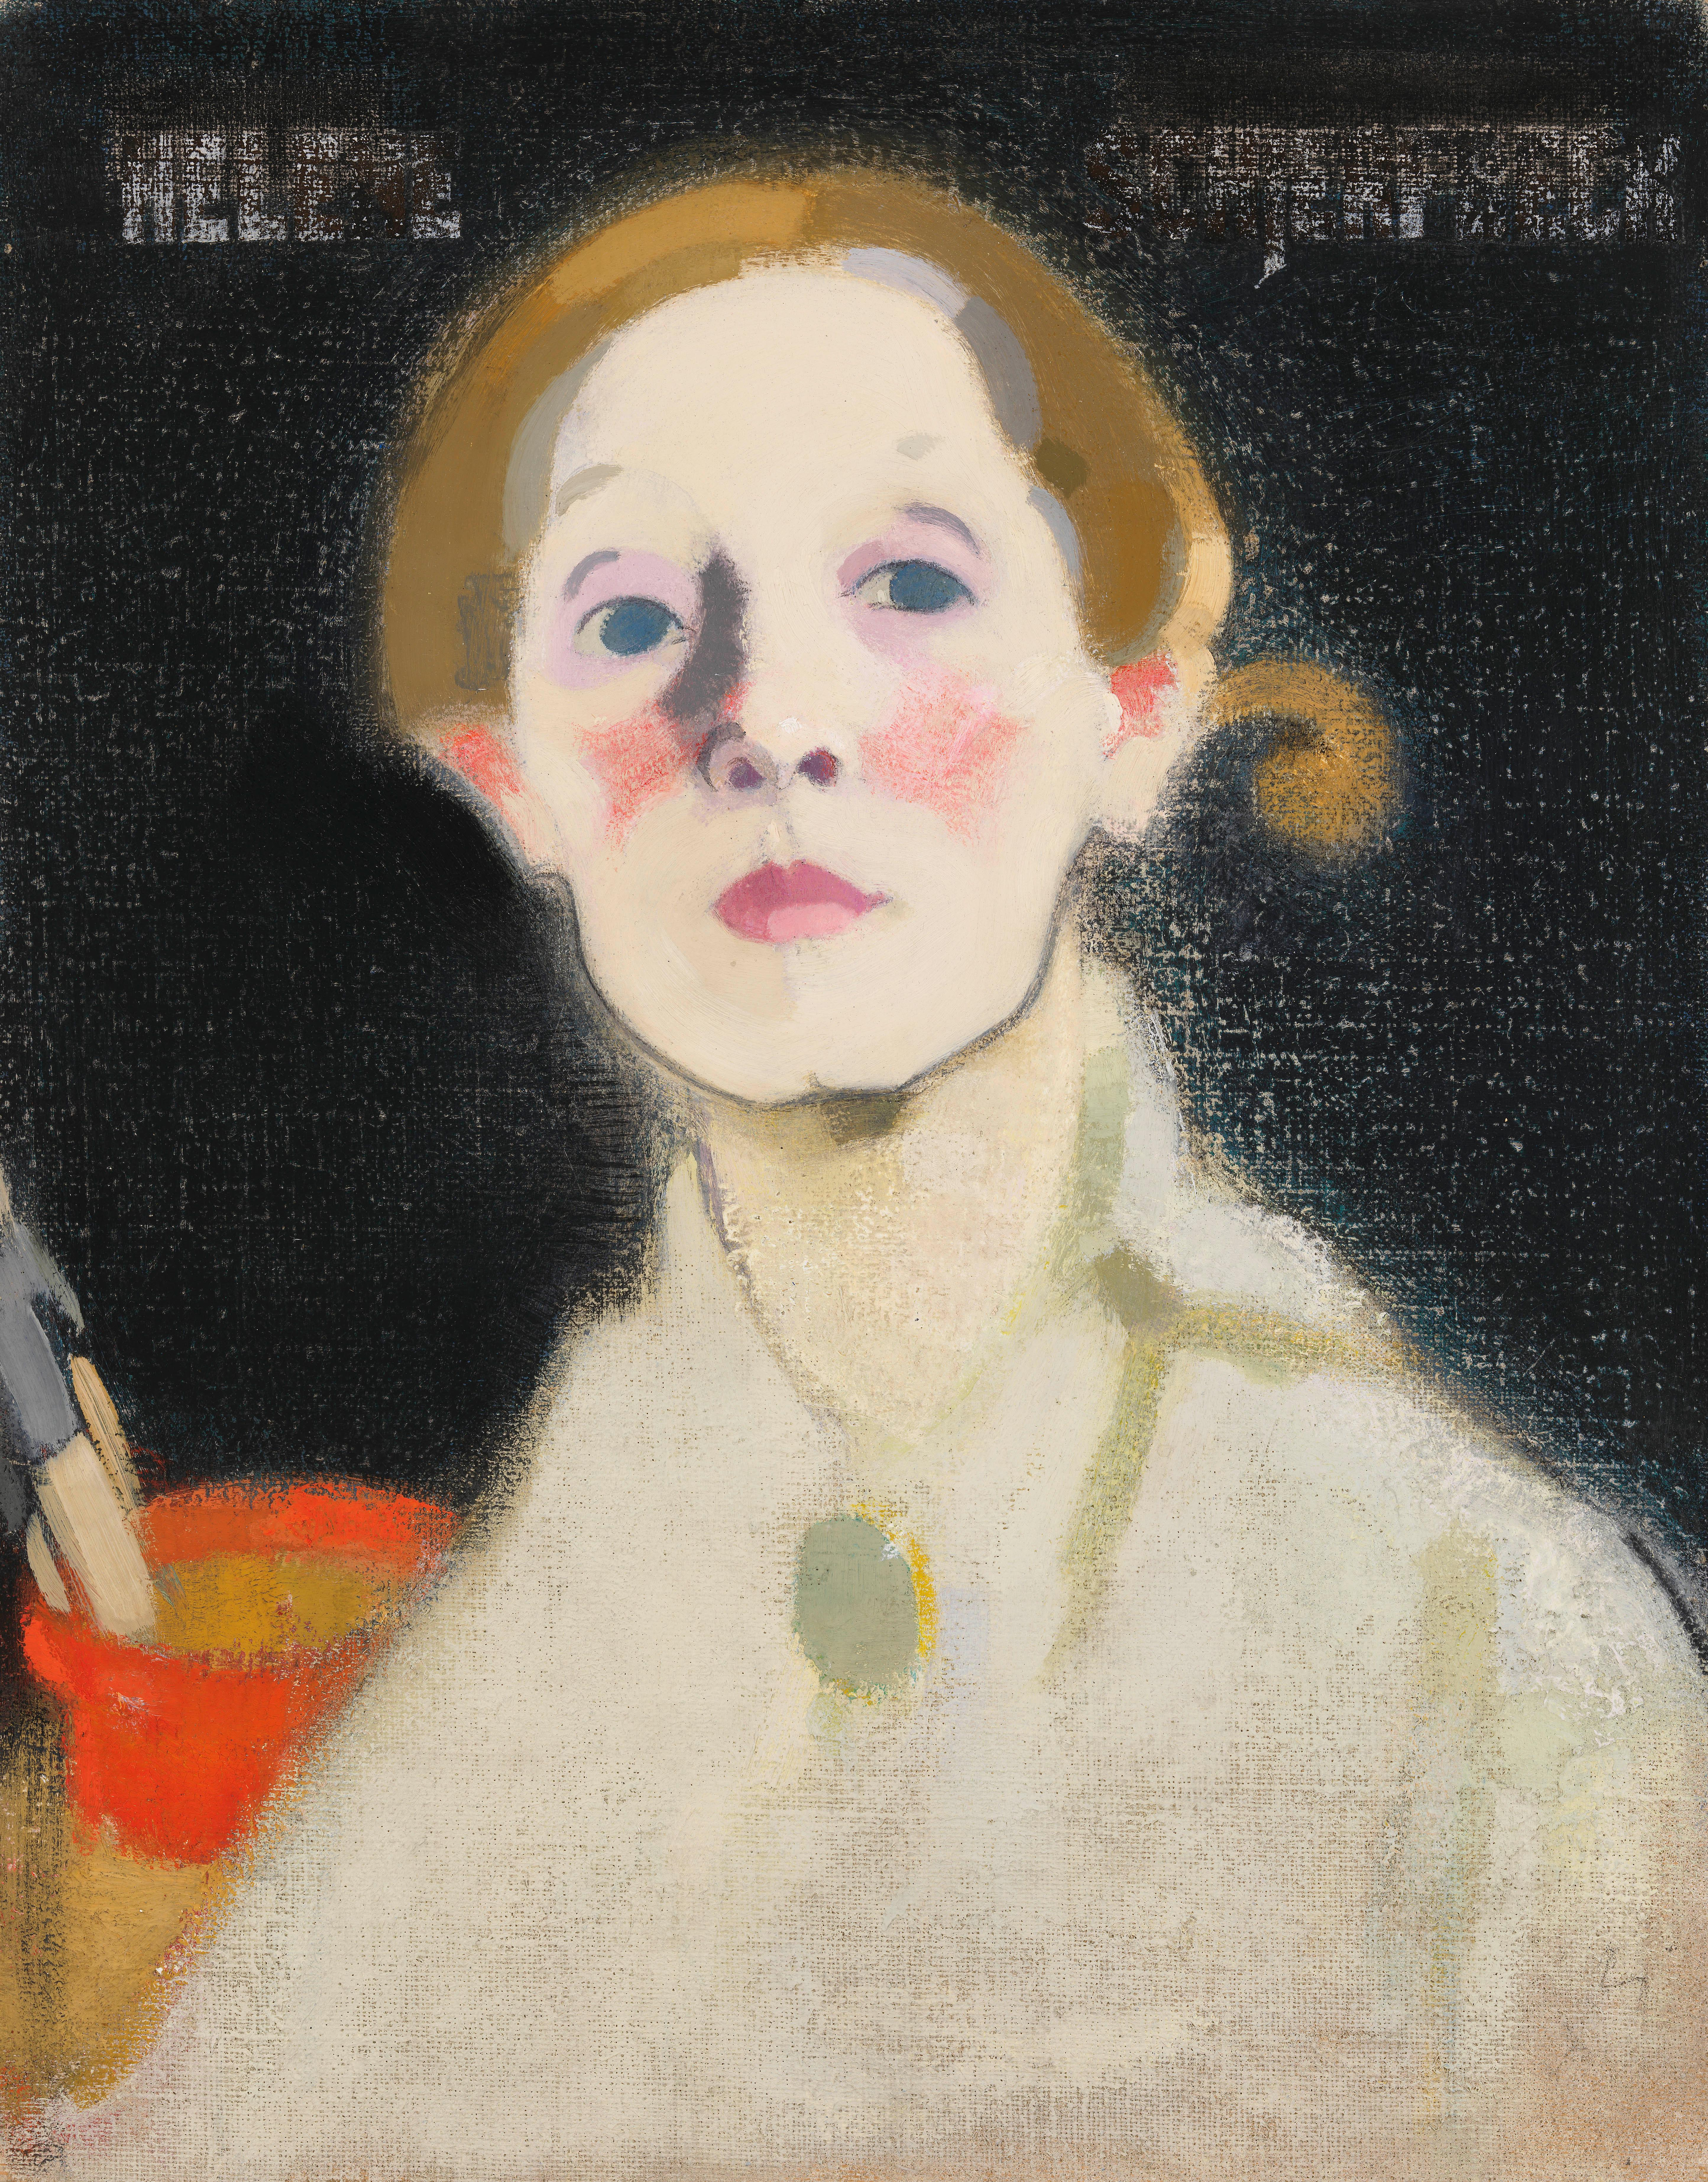 'Finland's Munch': the unnerving art of Helene Schjerfbeck